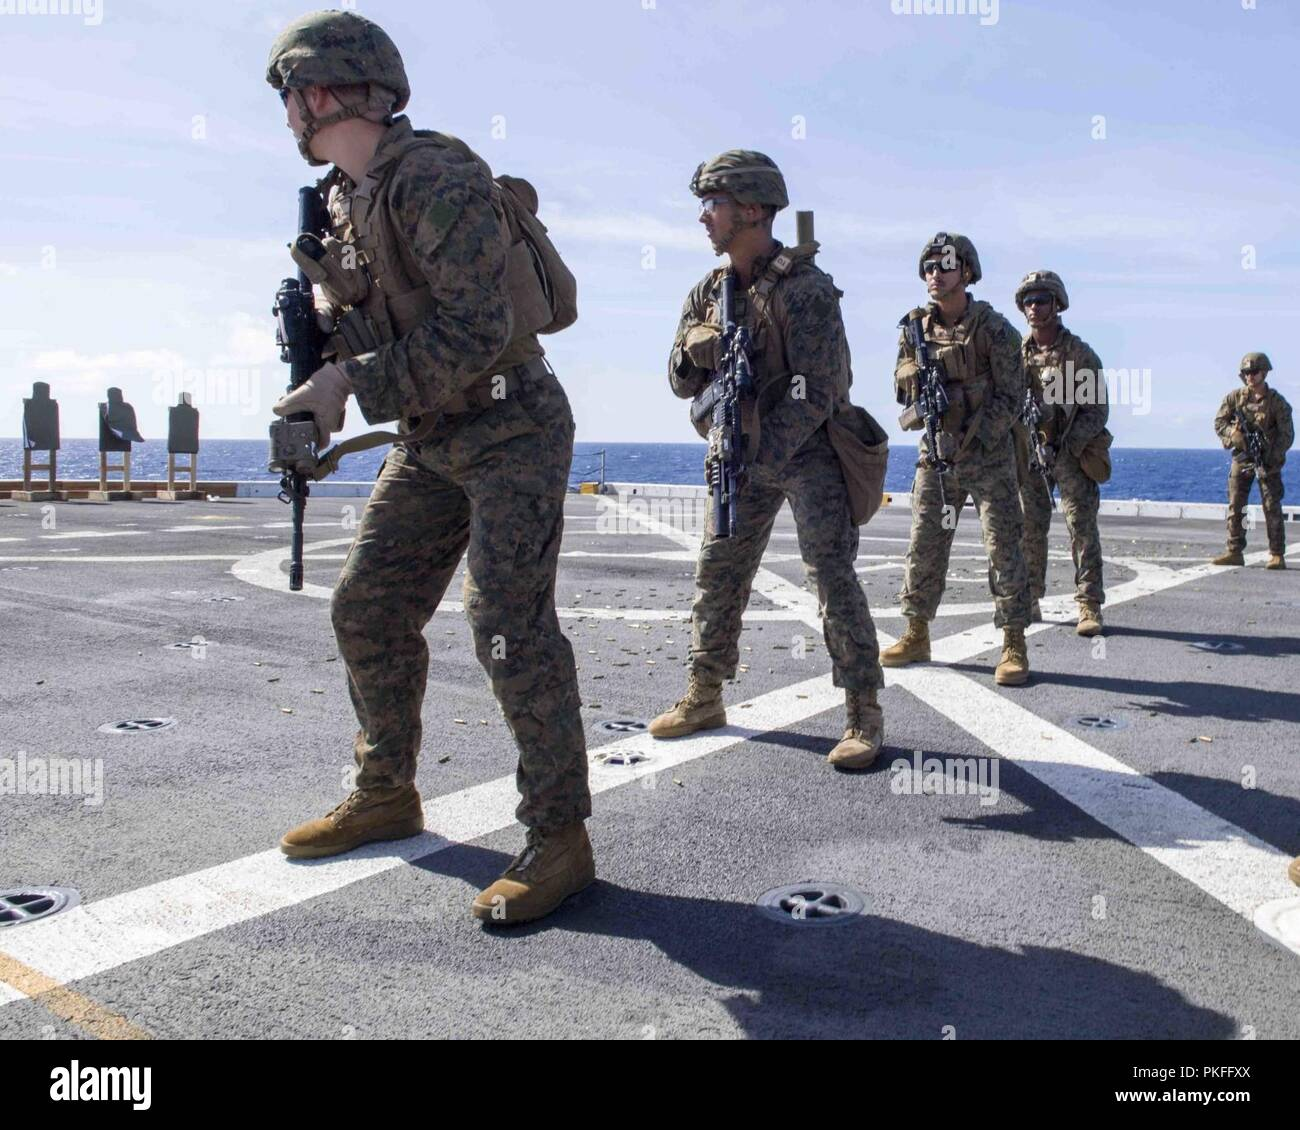 PACIFIC OCEAN (July 29, 2018) Marines assigned to the 13th Marine Expeditionary Unit (MEU), participate in a gun shoot training exercise on the flight deck of during a regularly scheduled deployment of Essex Amphibious Ready Group (ARG) and 13th Marine Expeditionary Unit (MEU). The Essex ARG/MEU team is a strong and flexible force equipped and scalable to respond to any crisis ranging from humanitarian assistance and disaster relief to contingency operations. - Stock Image